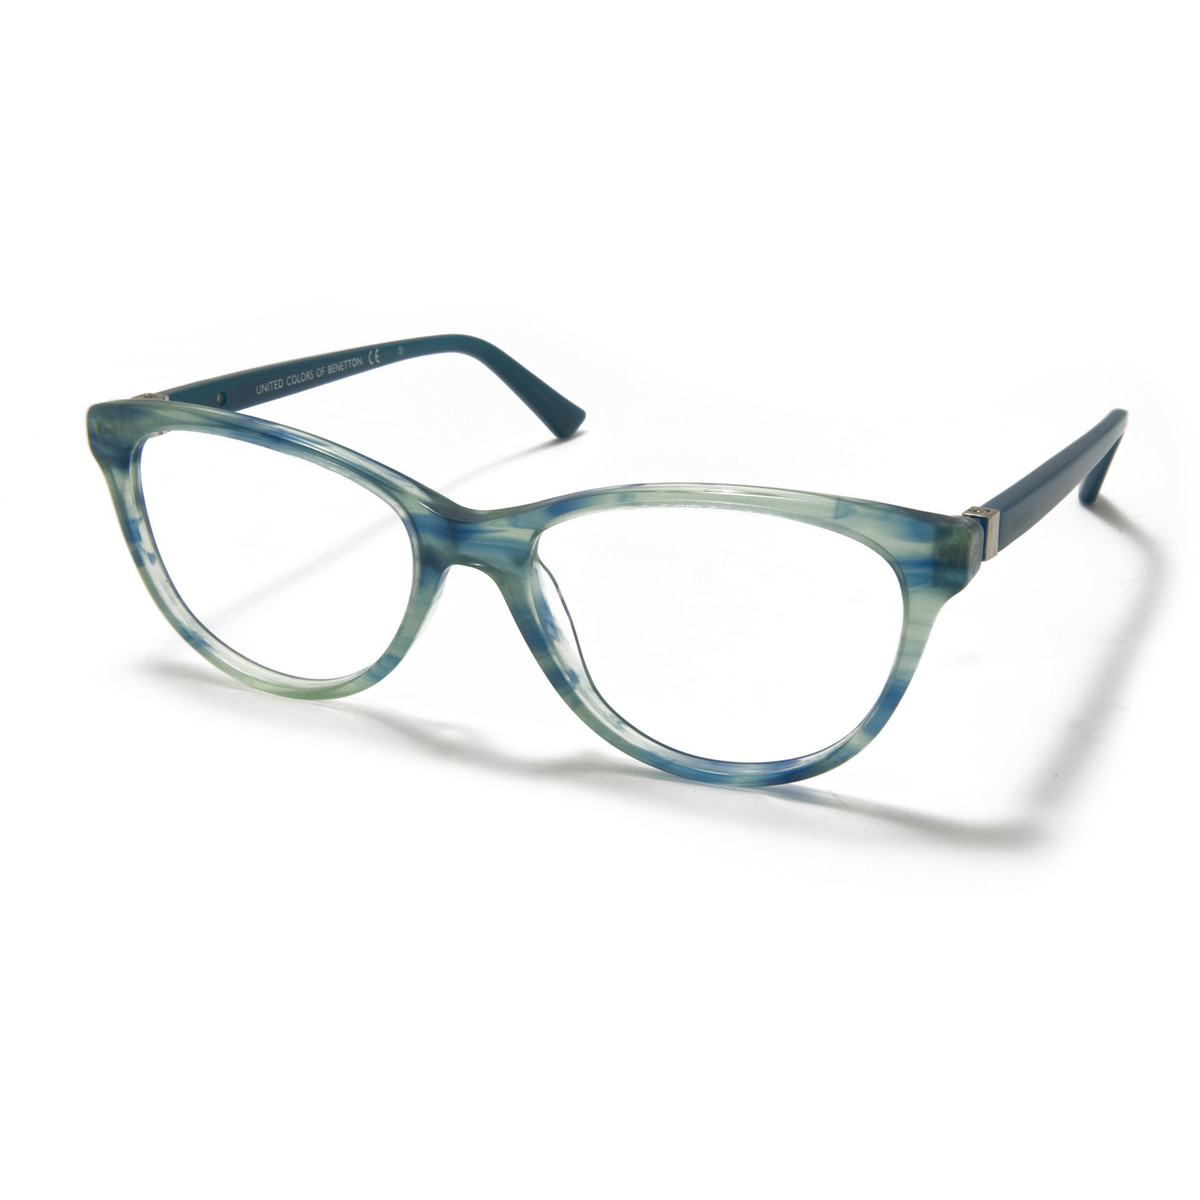 Rame ochelari vedere dama UNITED COLORS OF BENETTON BN338V02 de la United Colors of Benetton